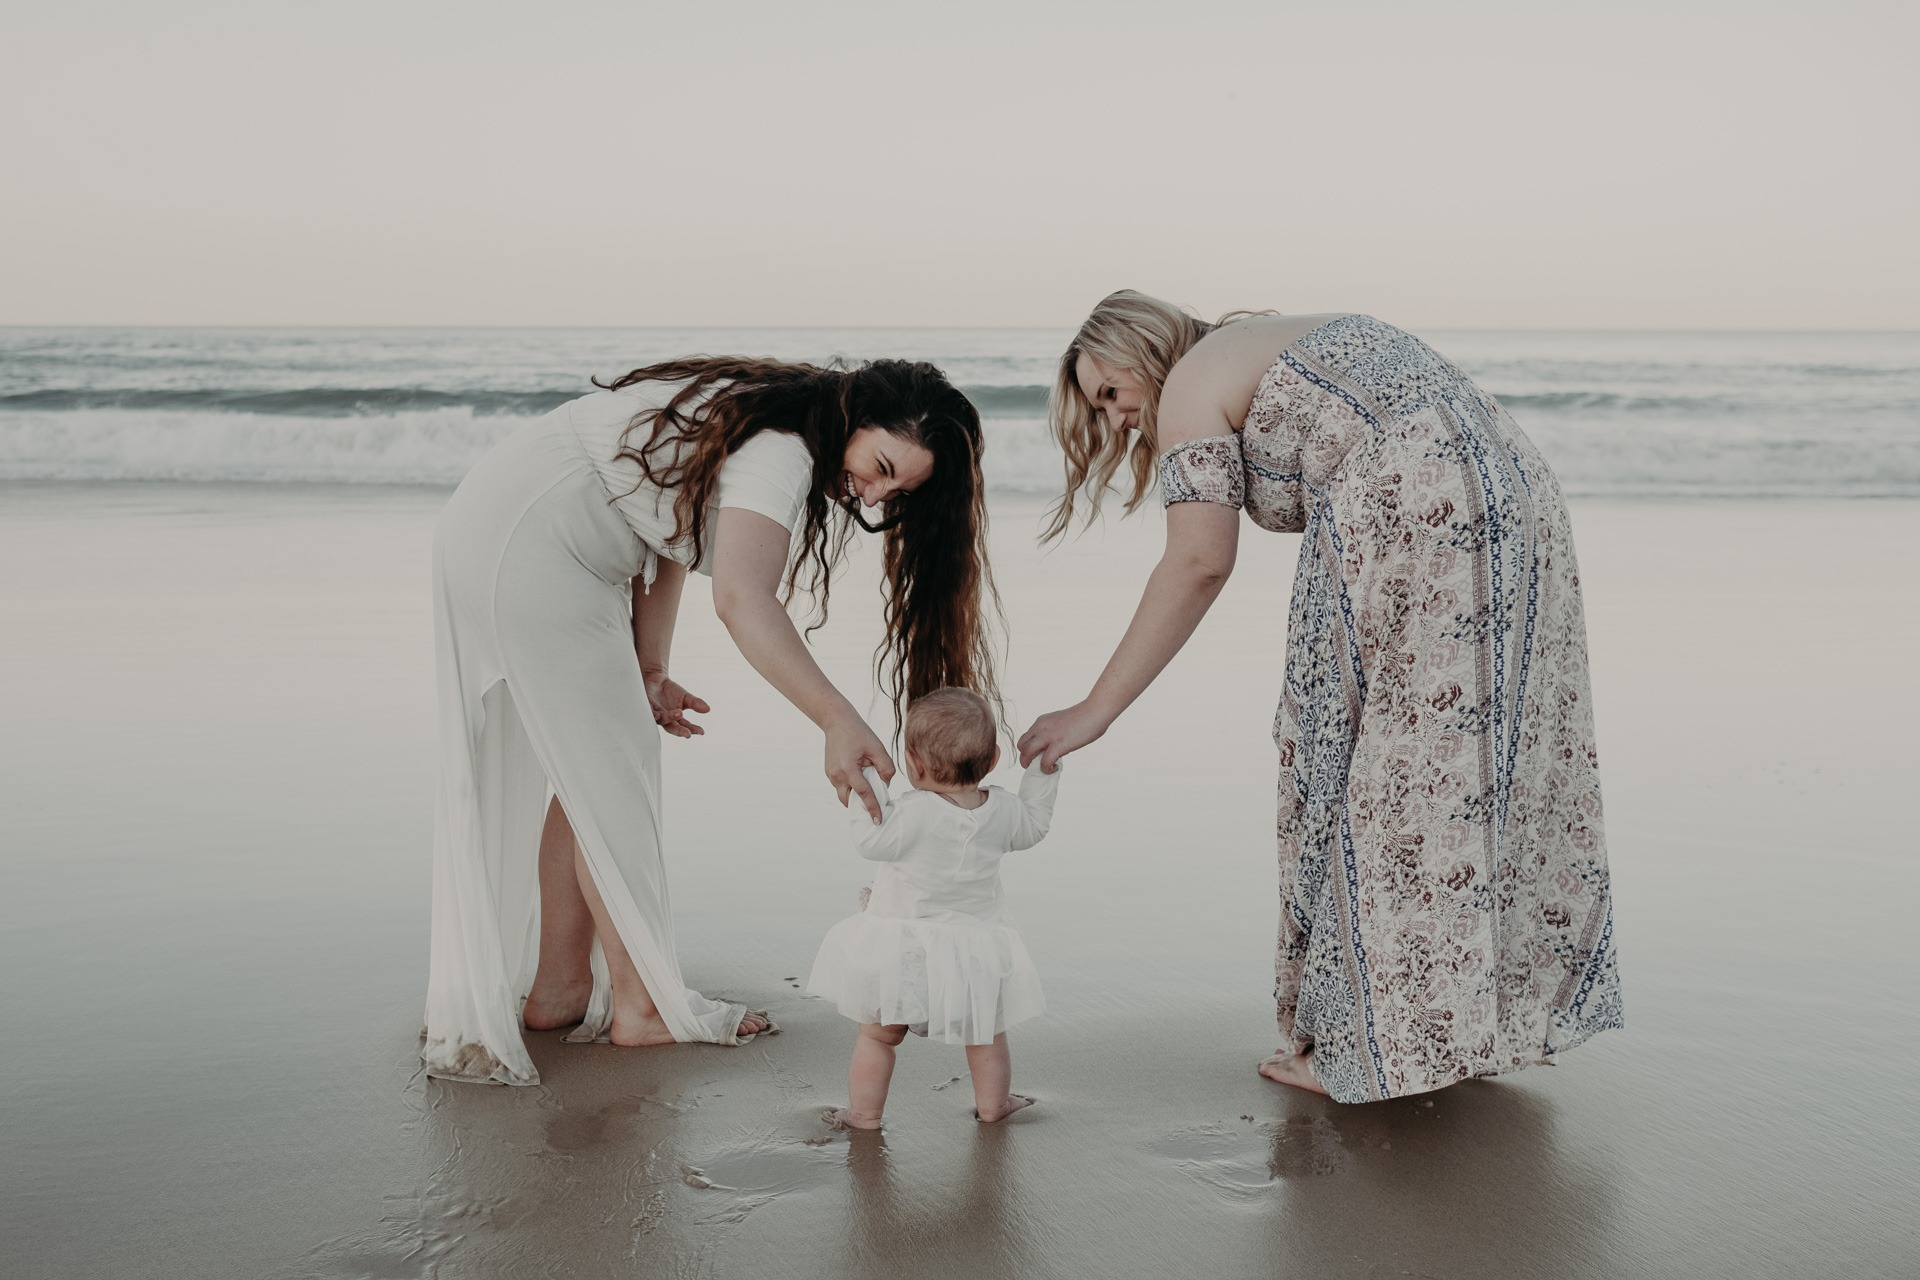 mother and baby on beach walking